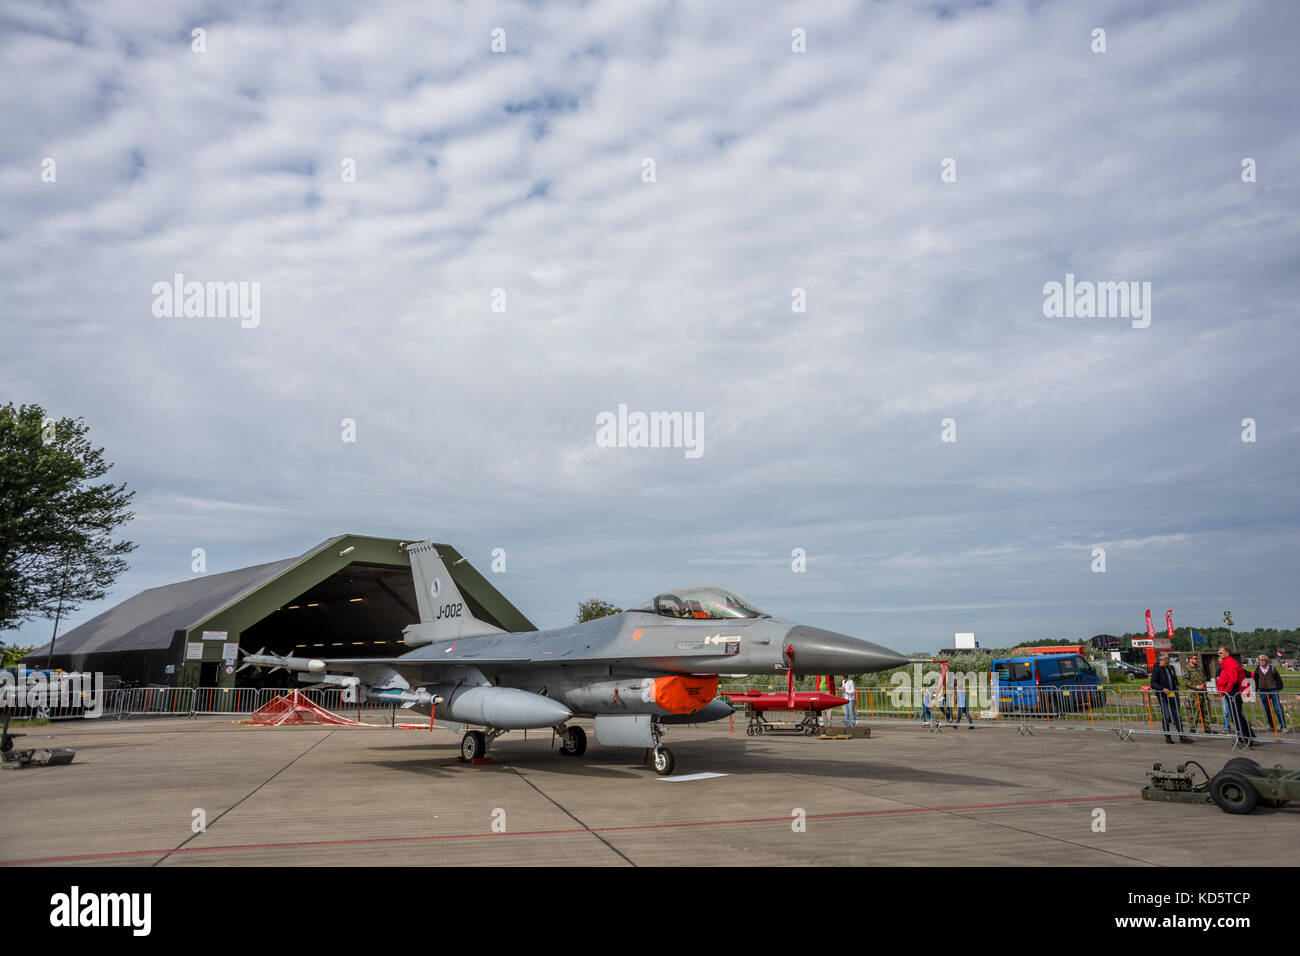 A General Dynamics F-16 Fighting Falcon is being exhibited at the air show of the Royal Netherlands Air Force at - Stock Image